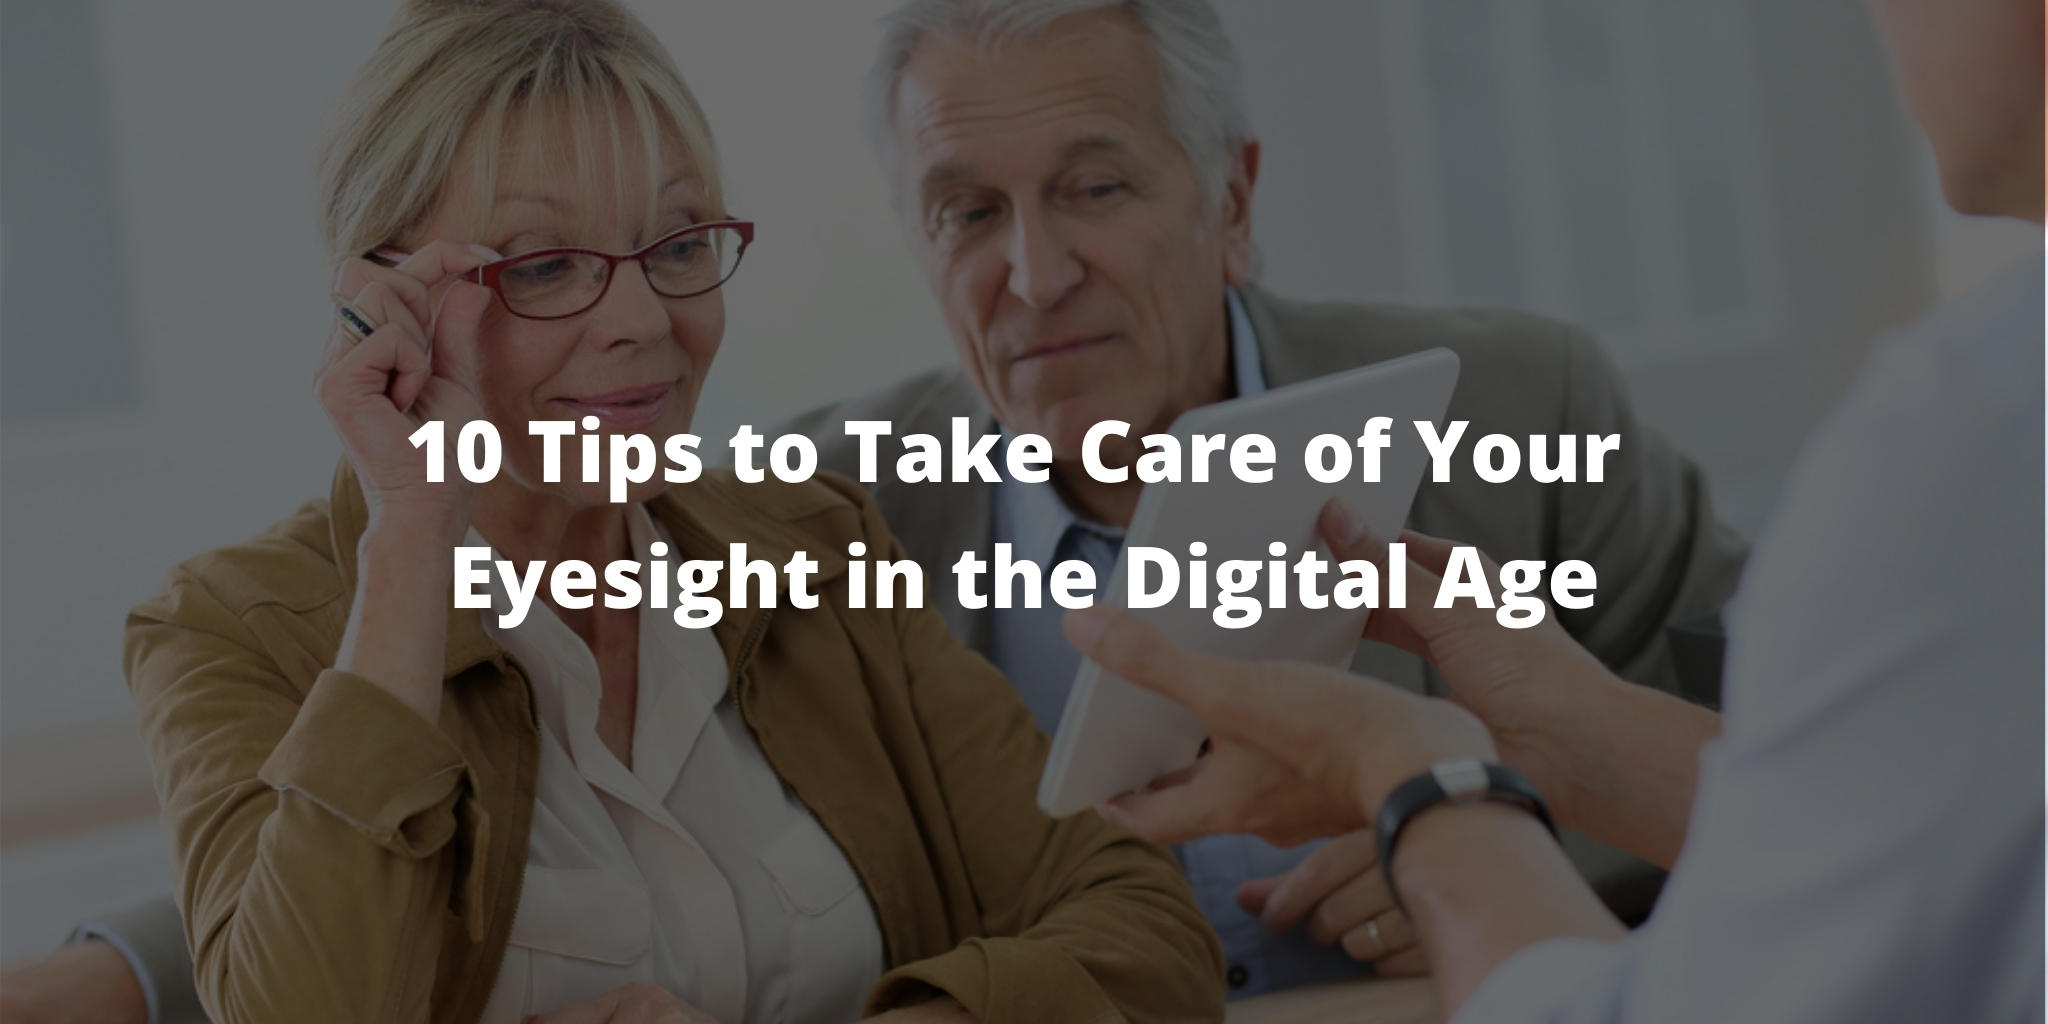 10 Tips to Take Care of Your Eyesight in the Digital Age